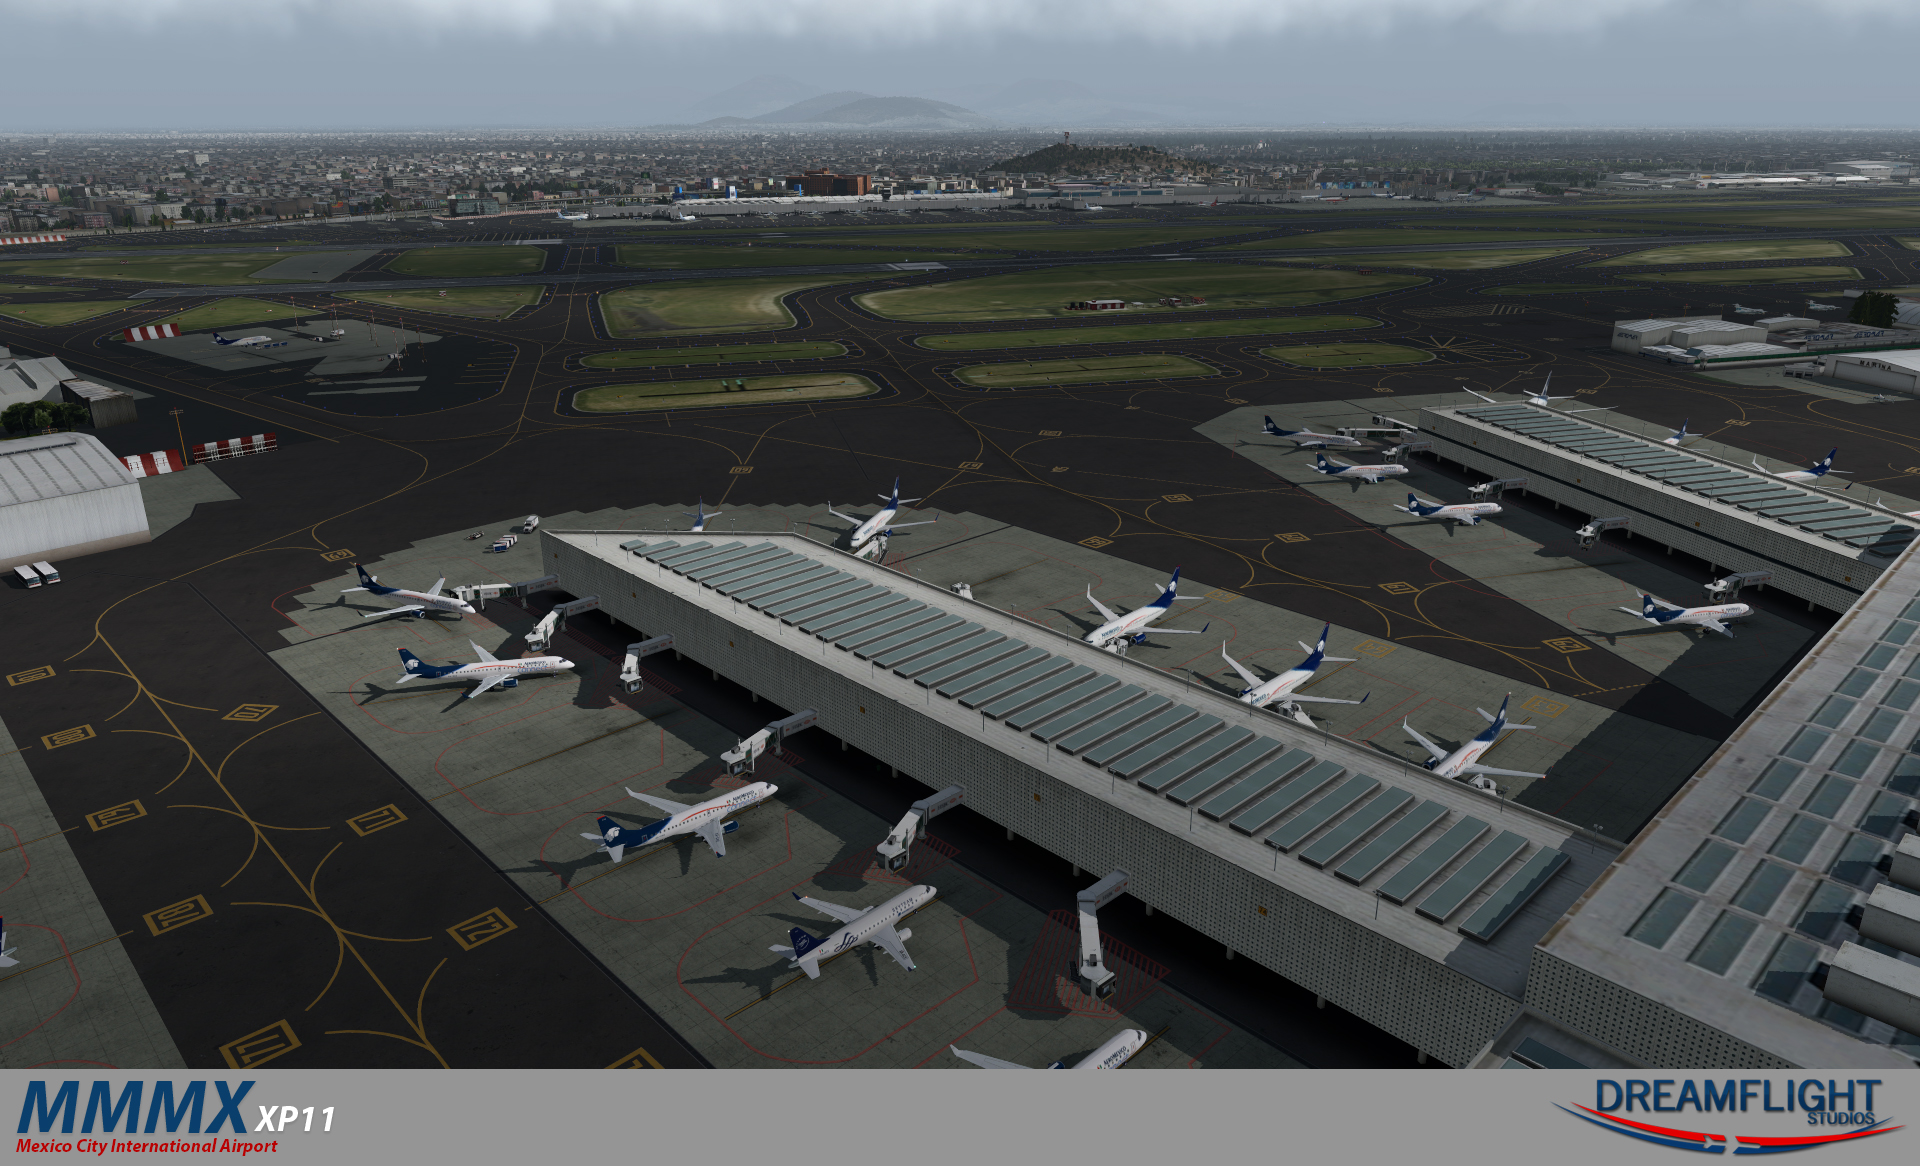 DREAMFLIGHT STUDIOS - MEXICO CITY AIRPORT X-PLANE 11